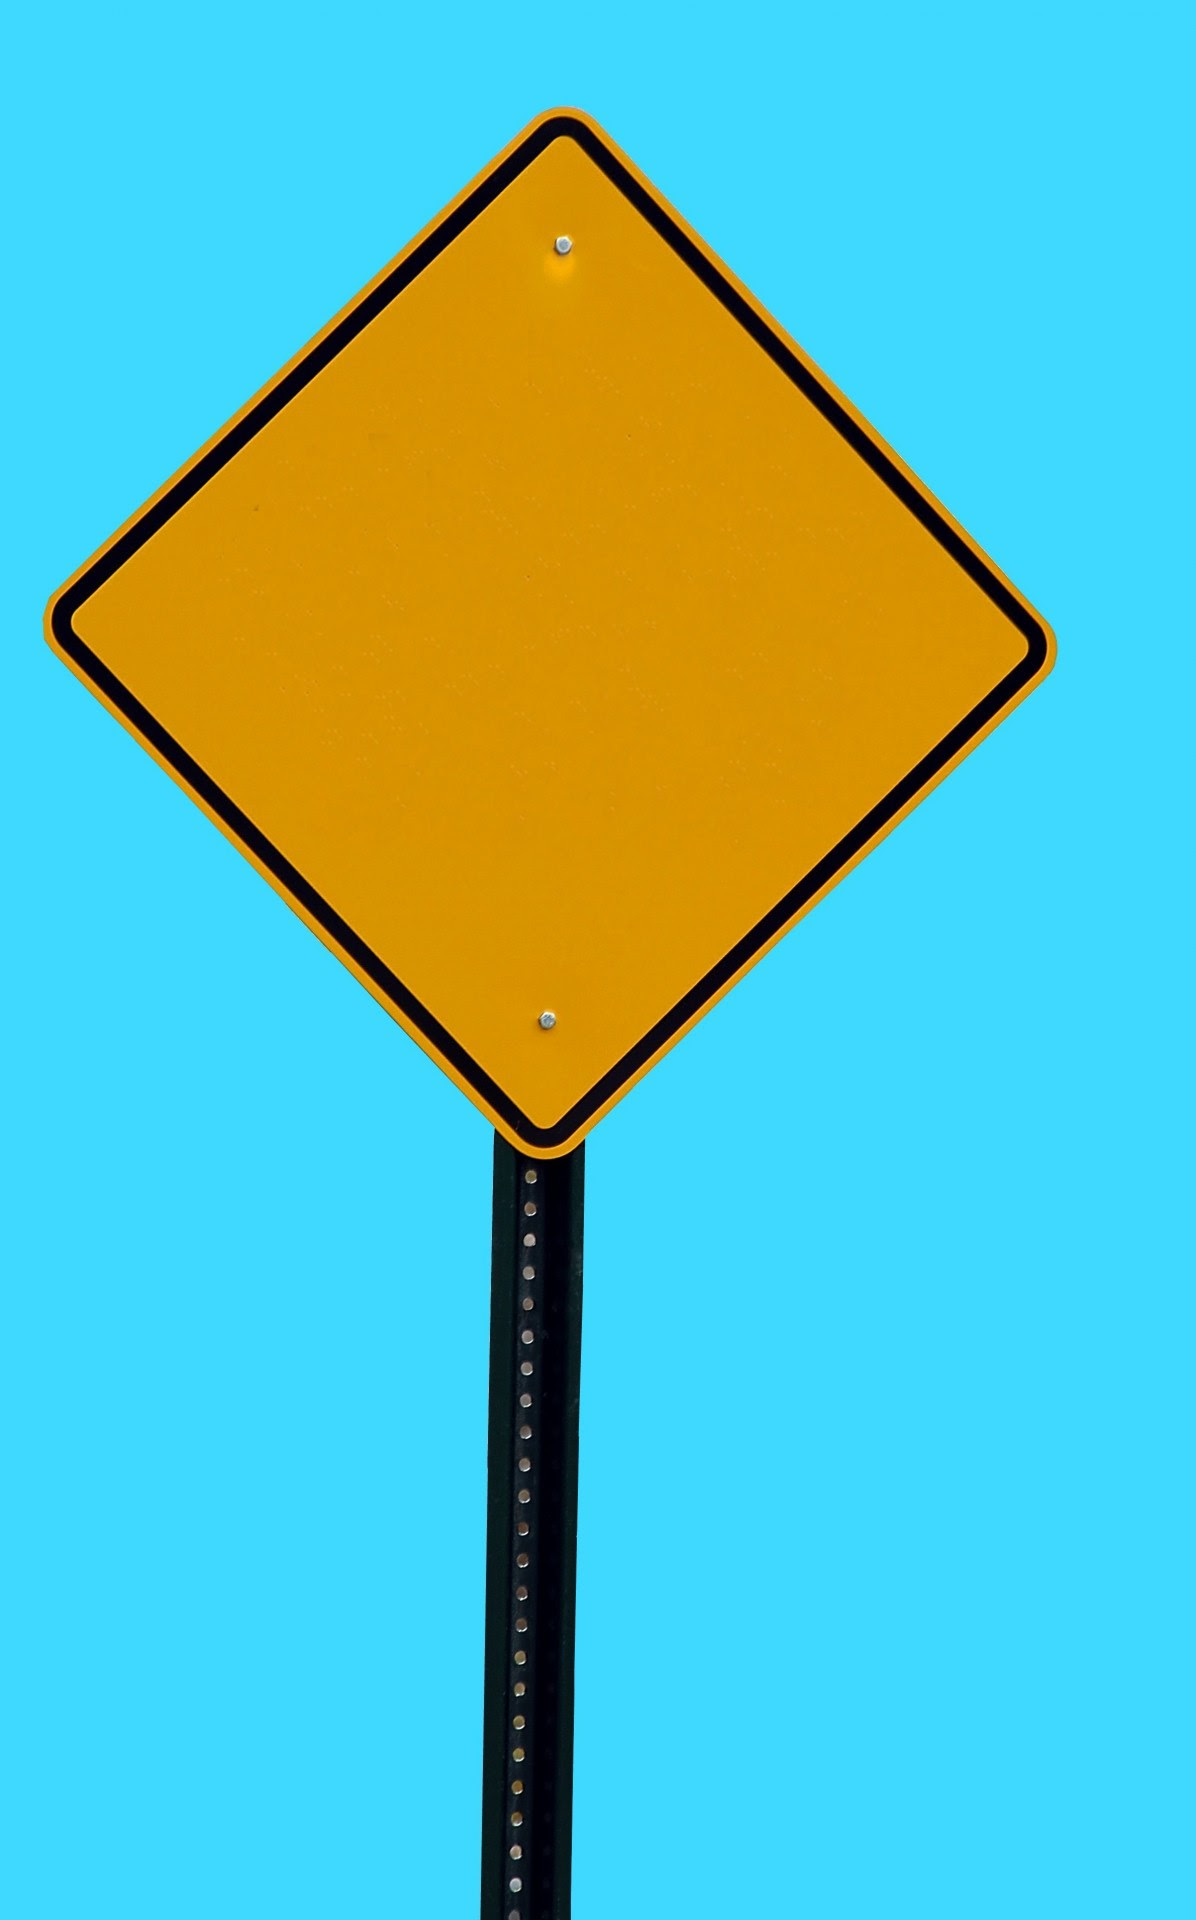 Blank Road Sign Free Stock Photo - Public Domain Pictures